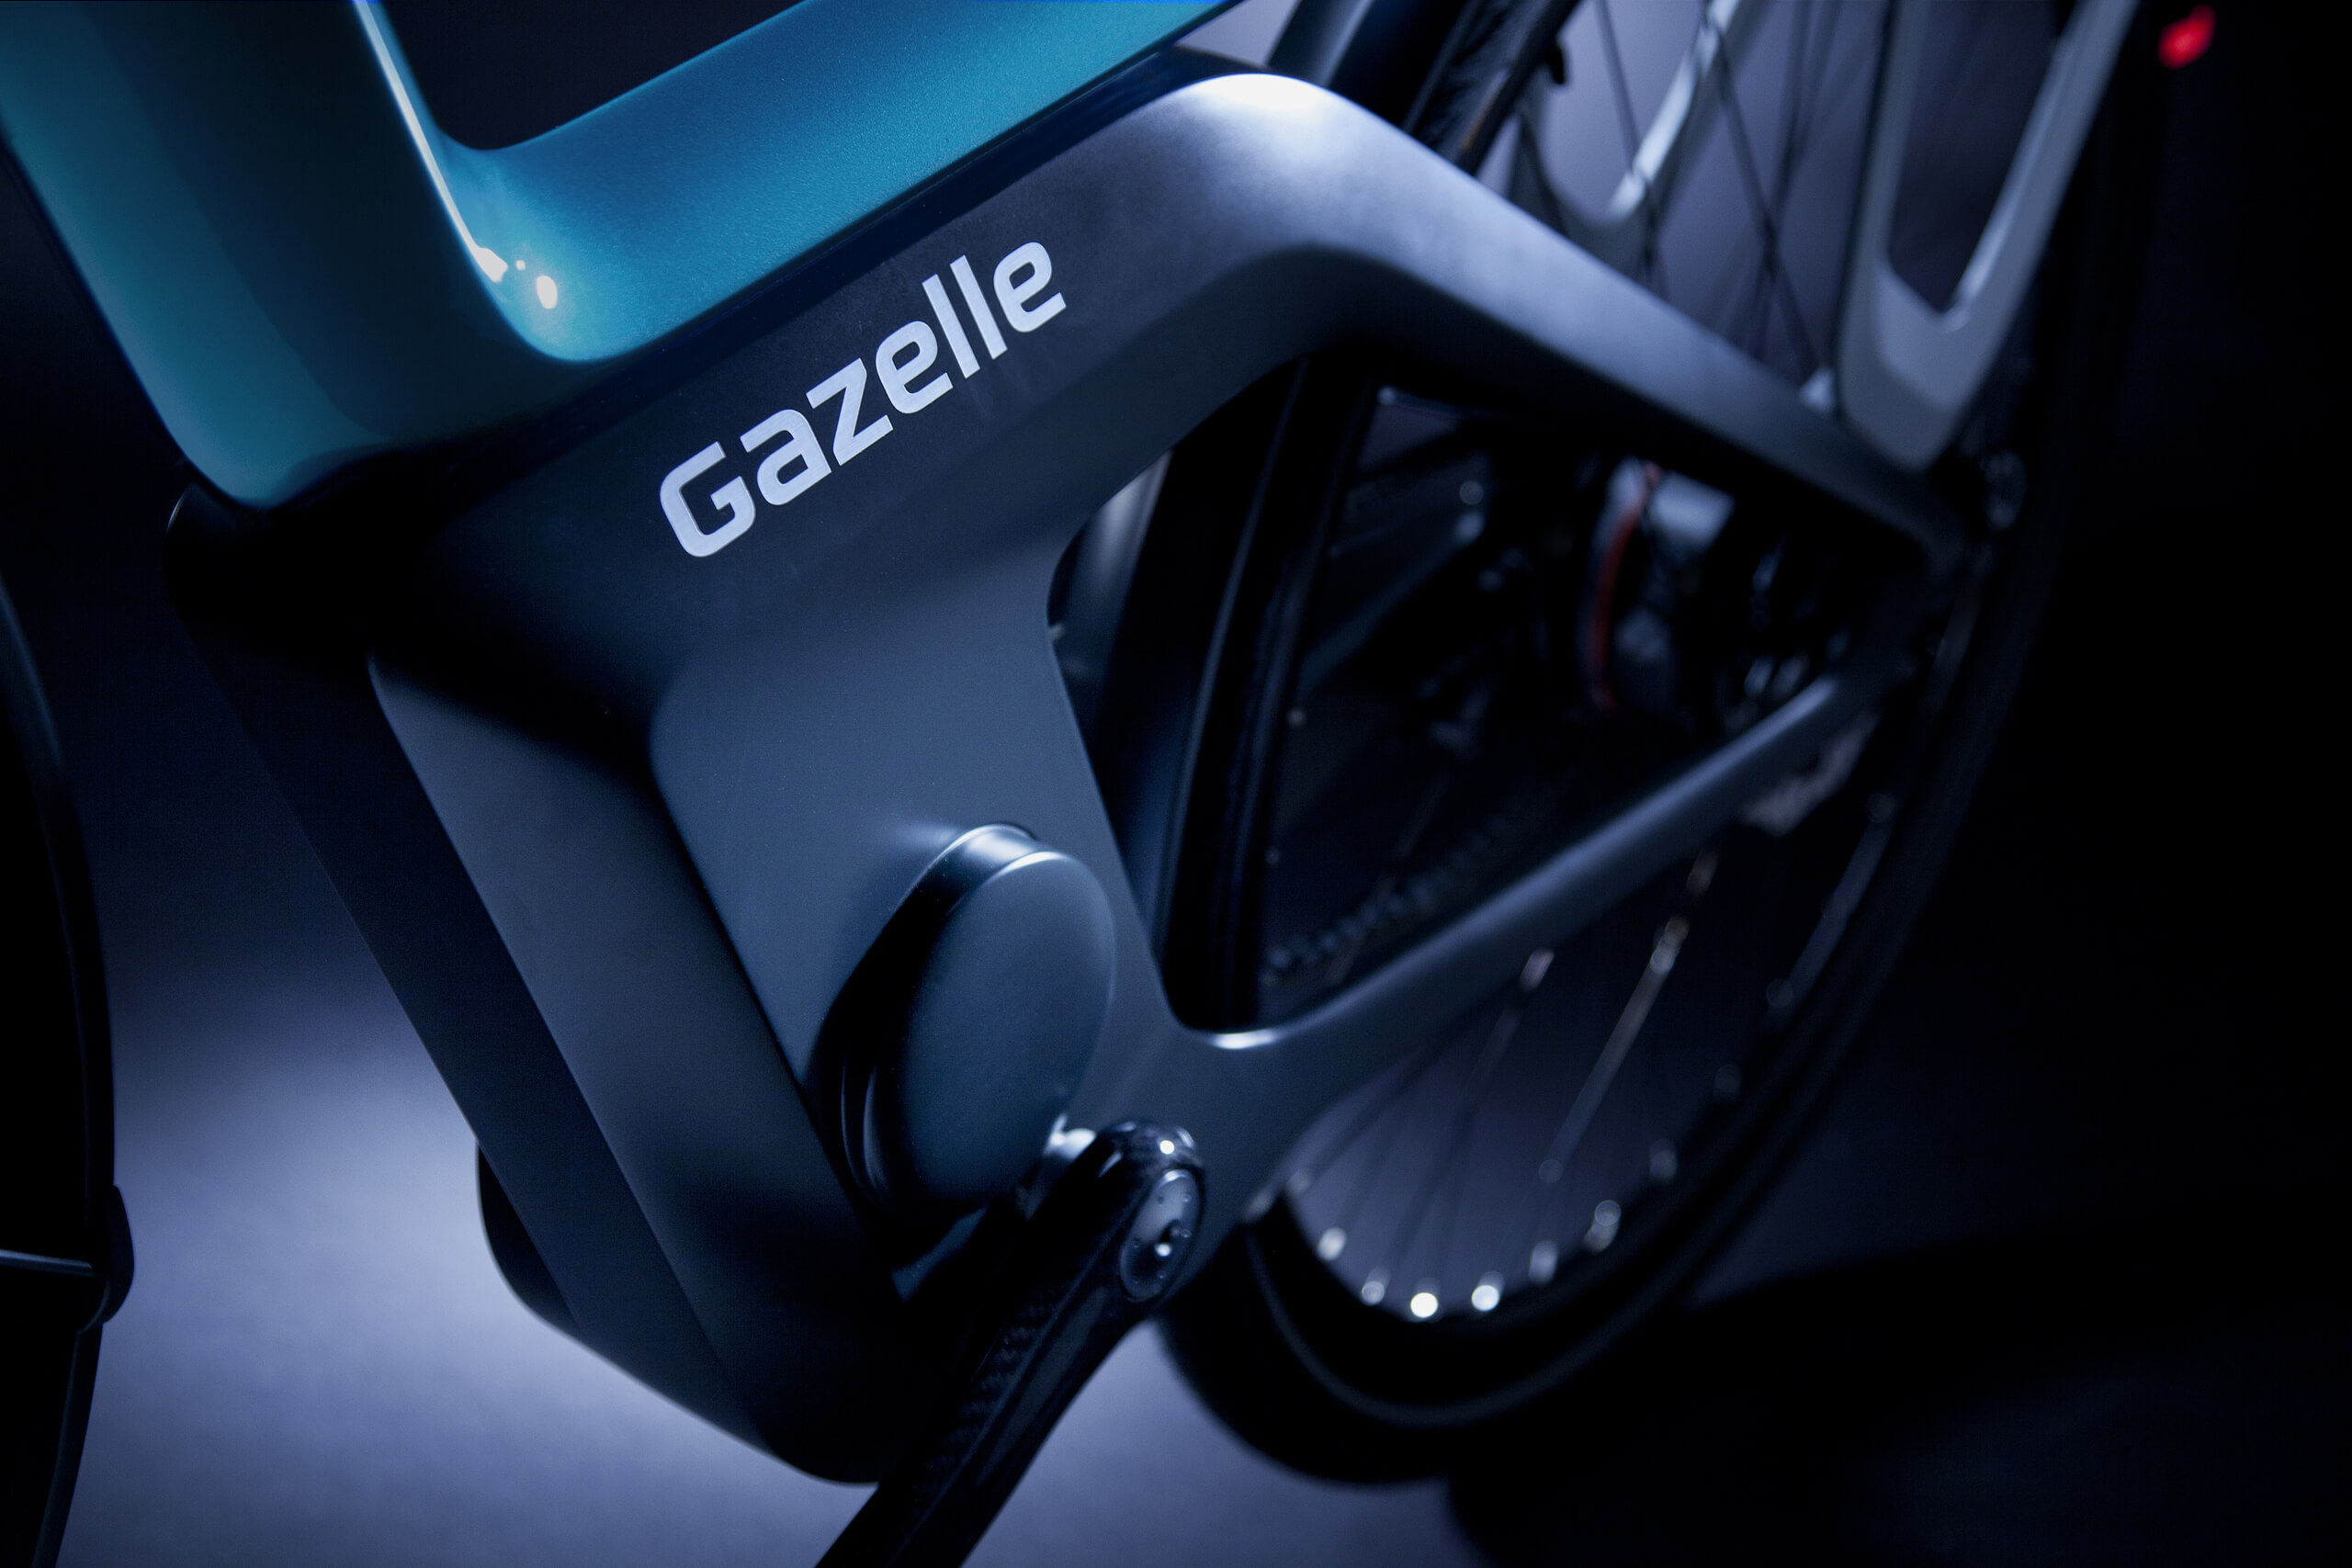 Gazelle presenteert e-bike met iconisch design